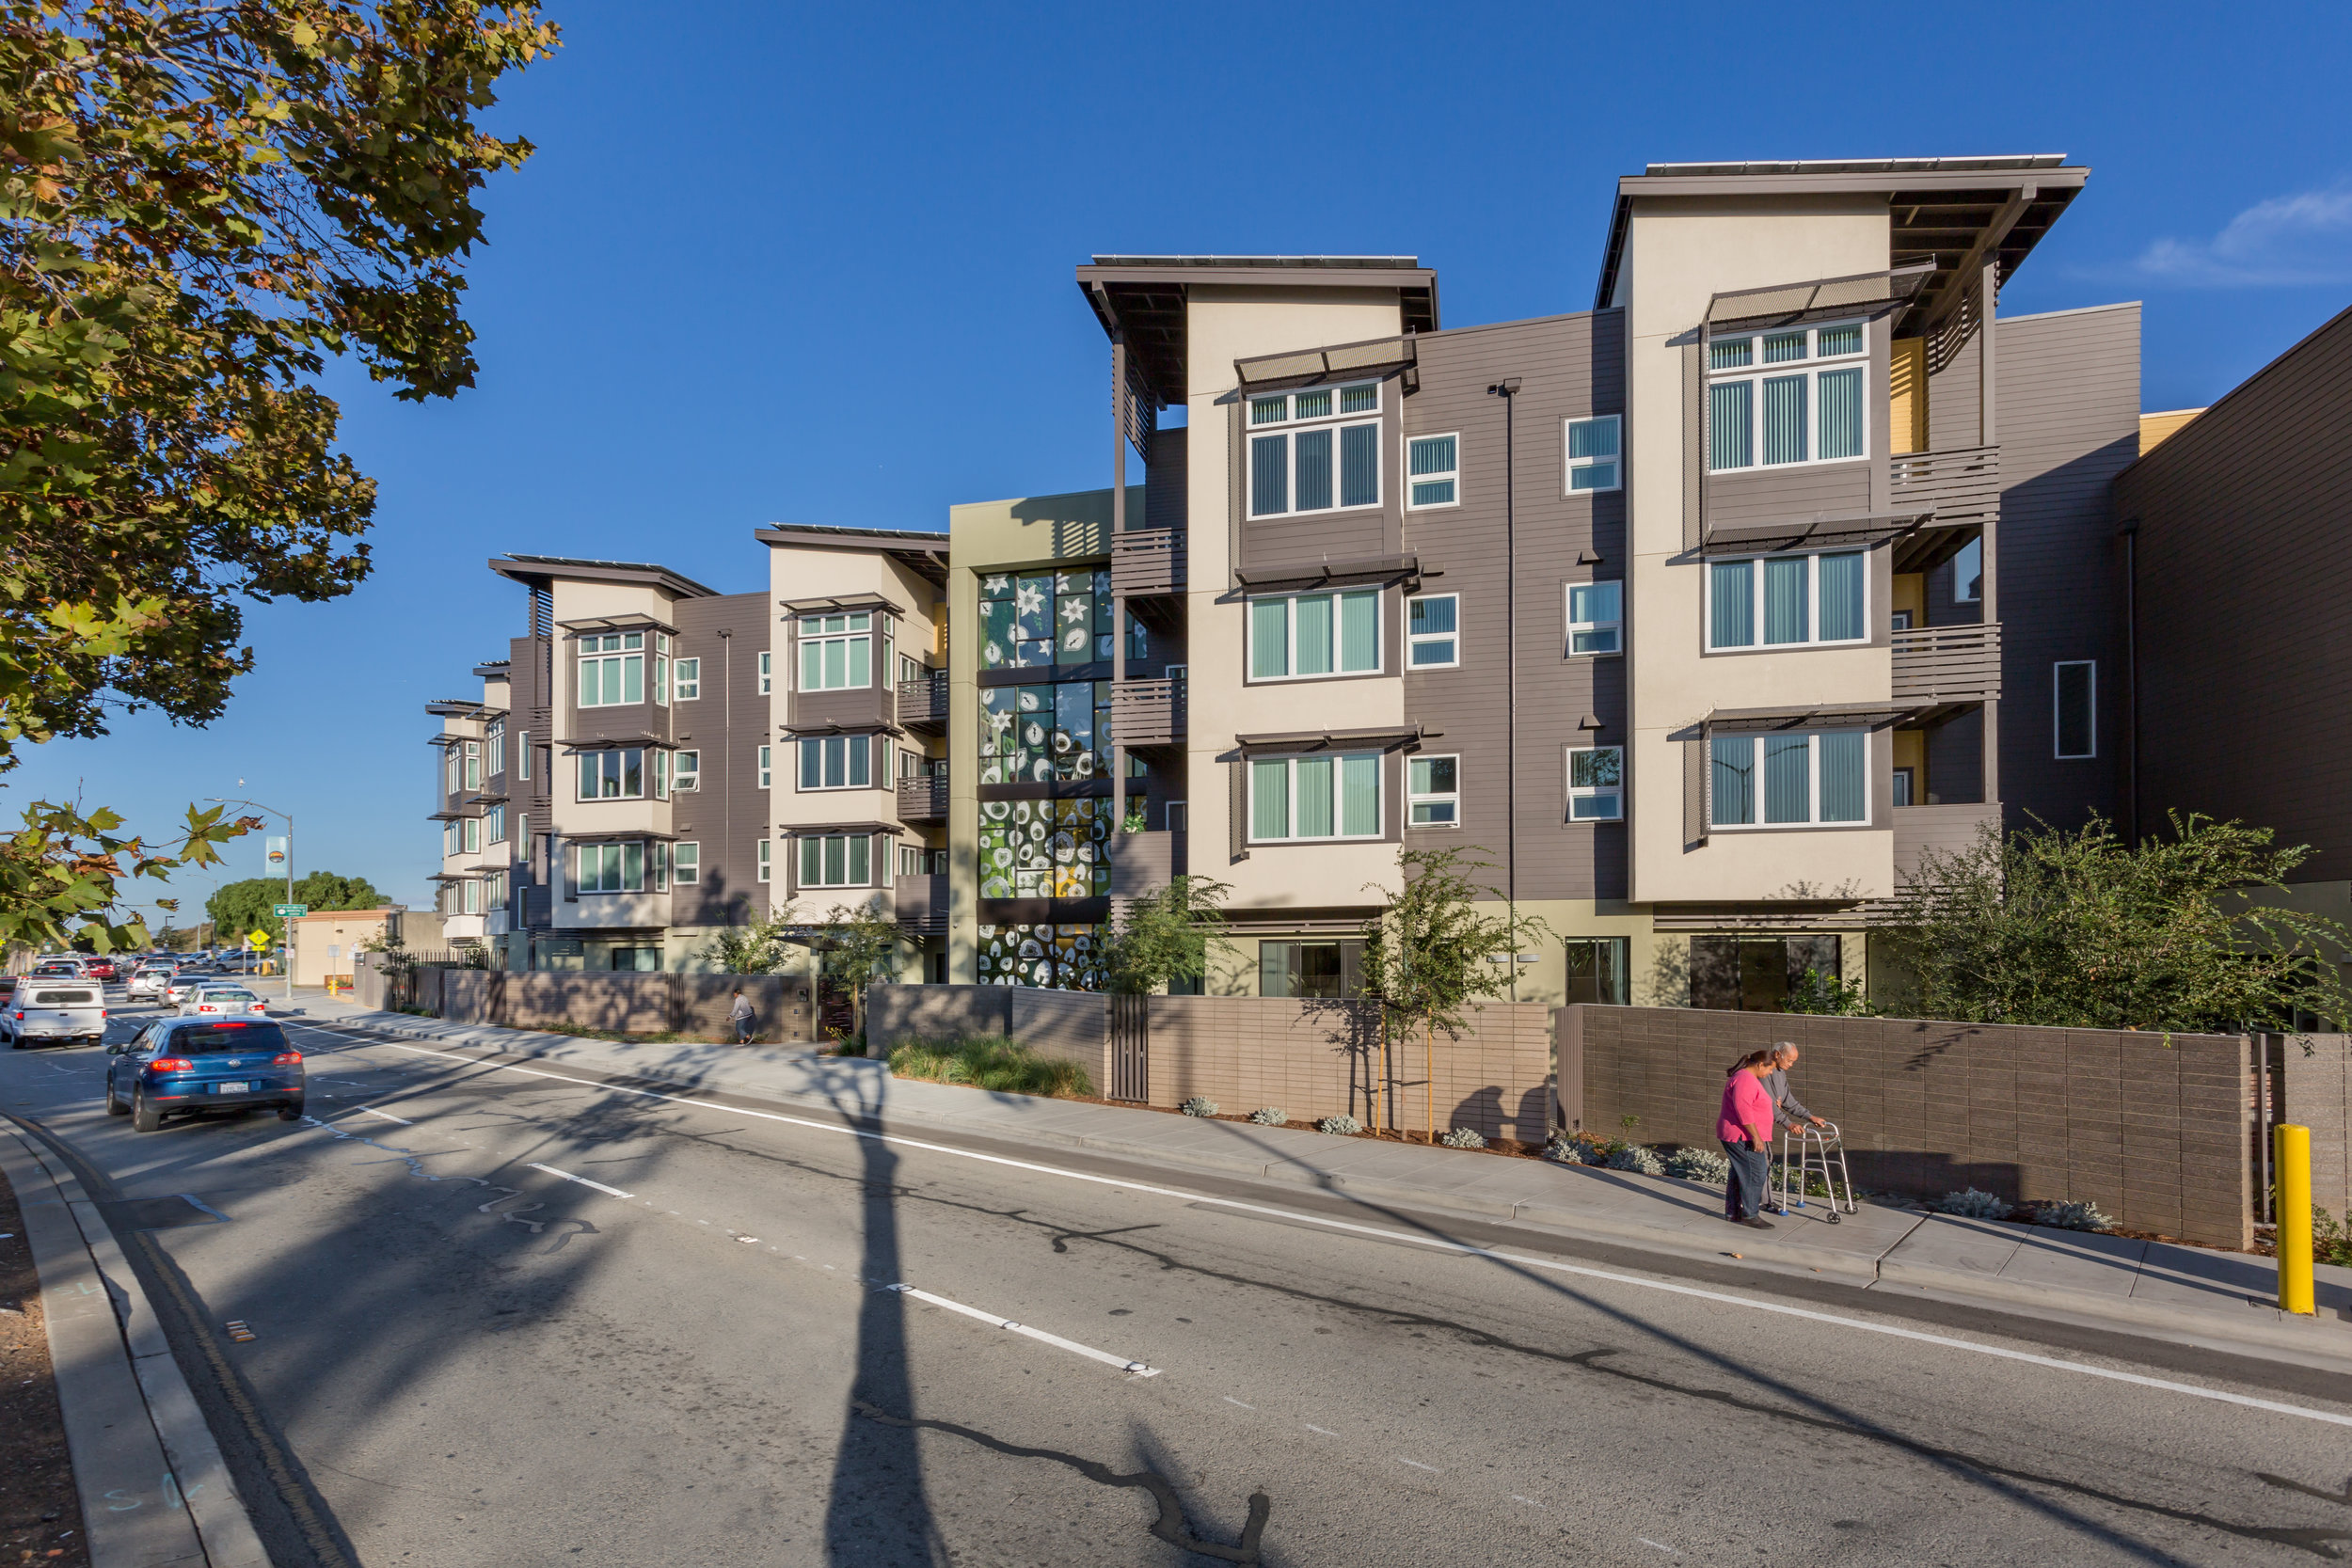 2018 Silicon Valley Business Journal Structures AwardsAfordable - Rate Residential Project -